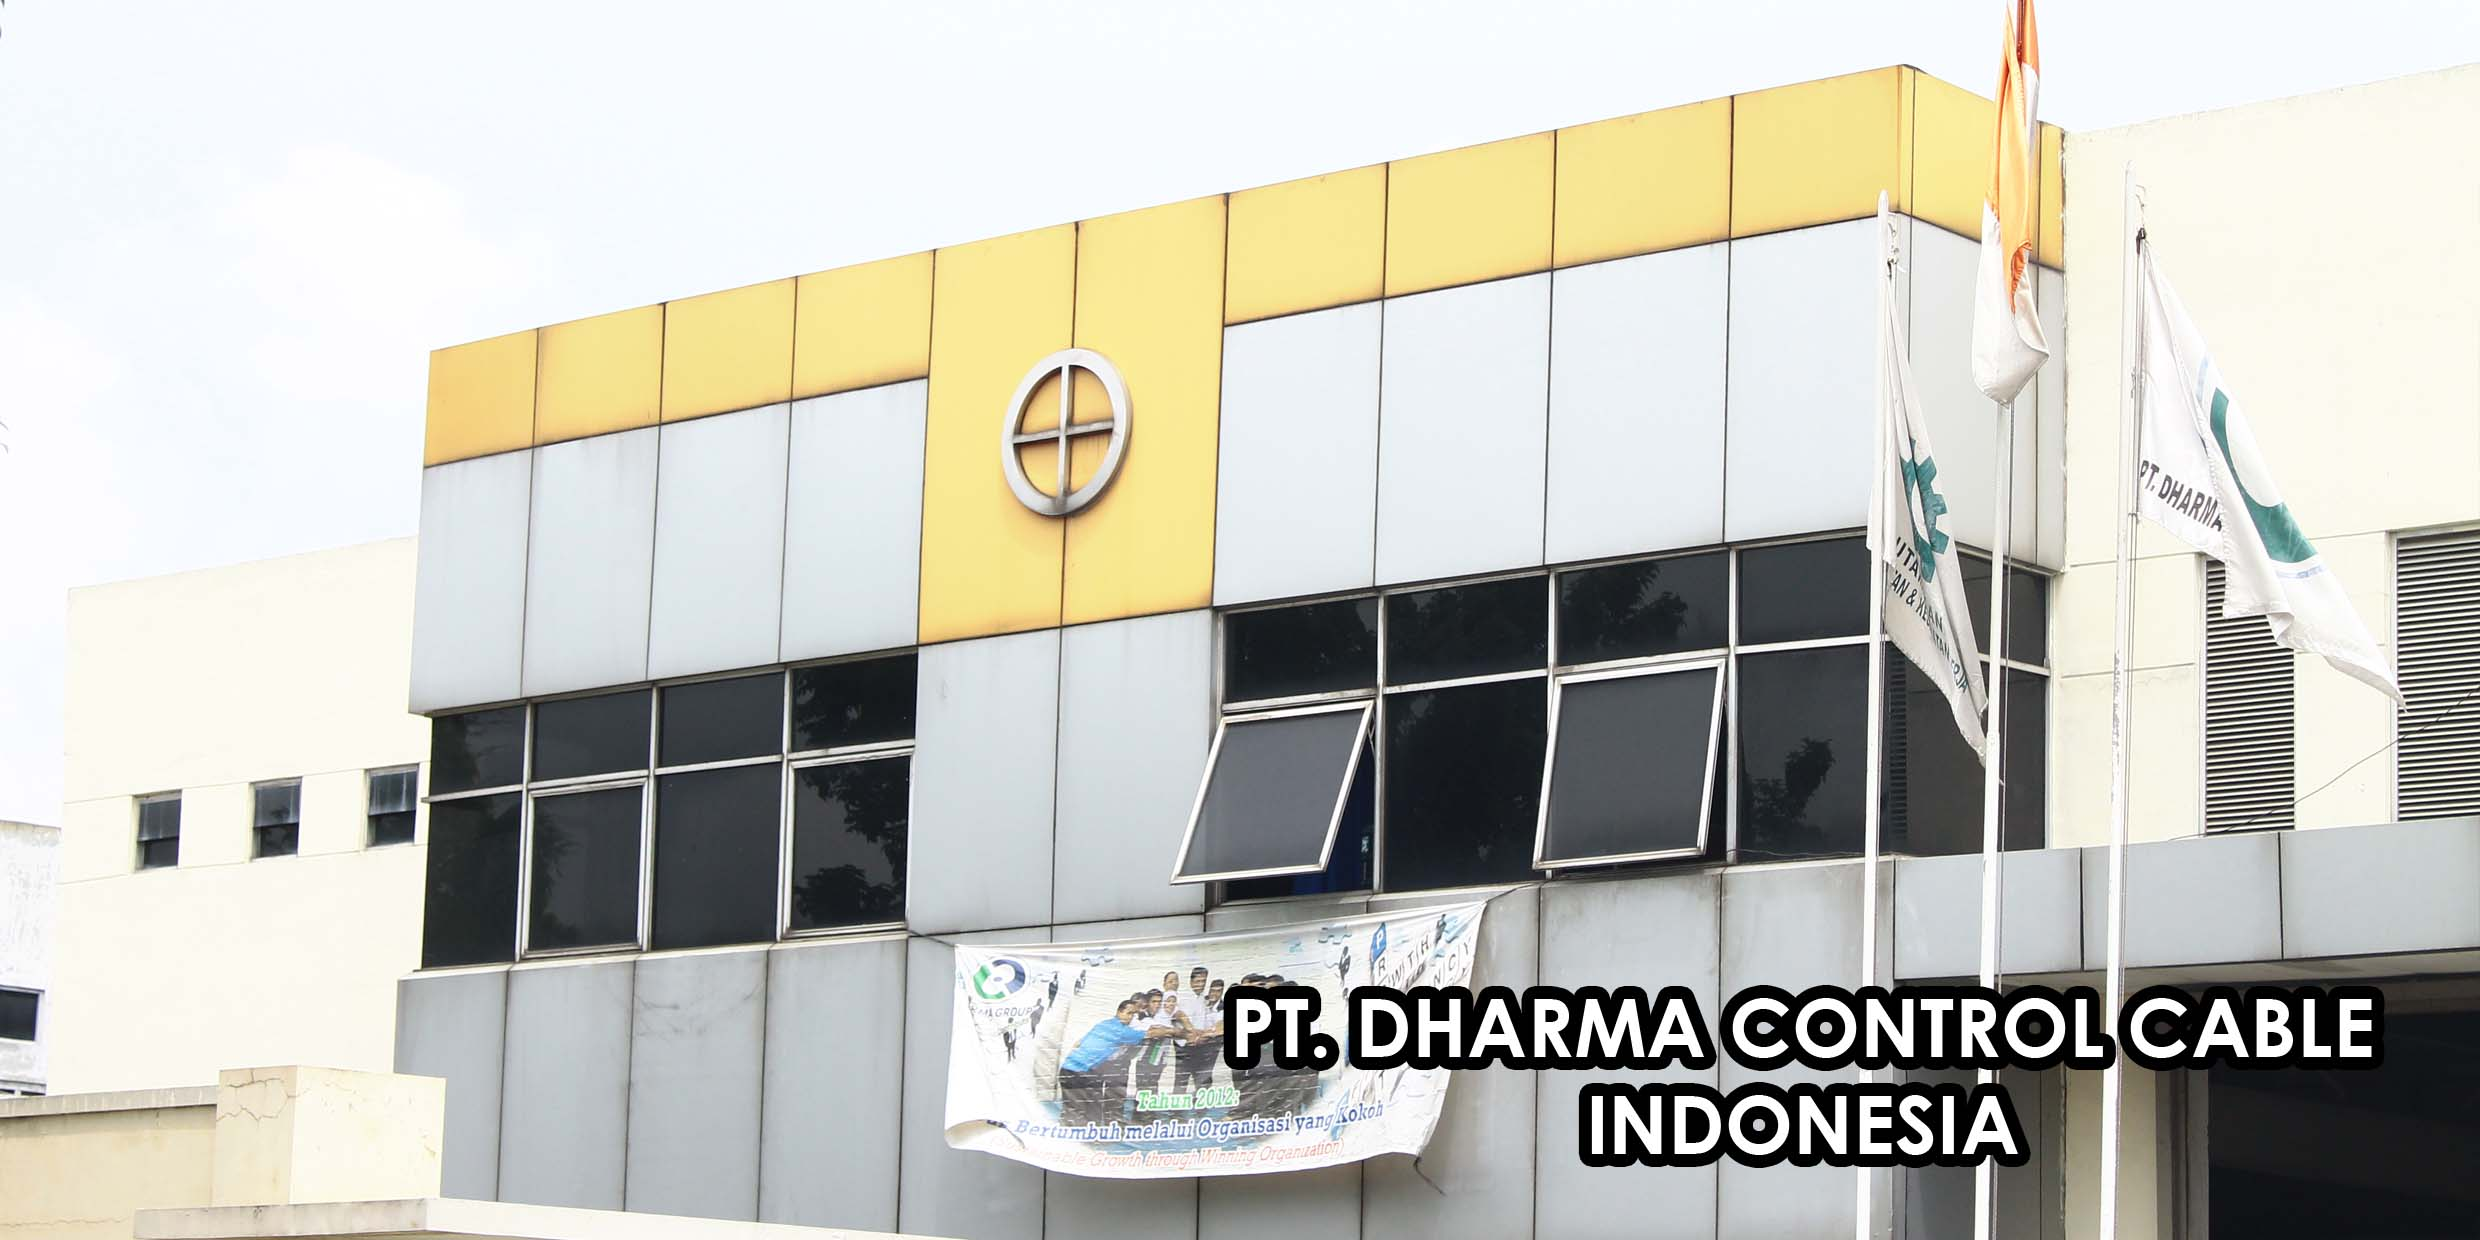 Dharma Controlcable Indonesia. PT